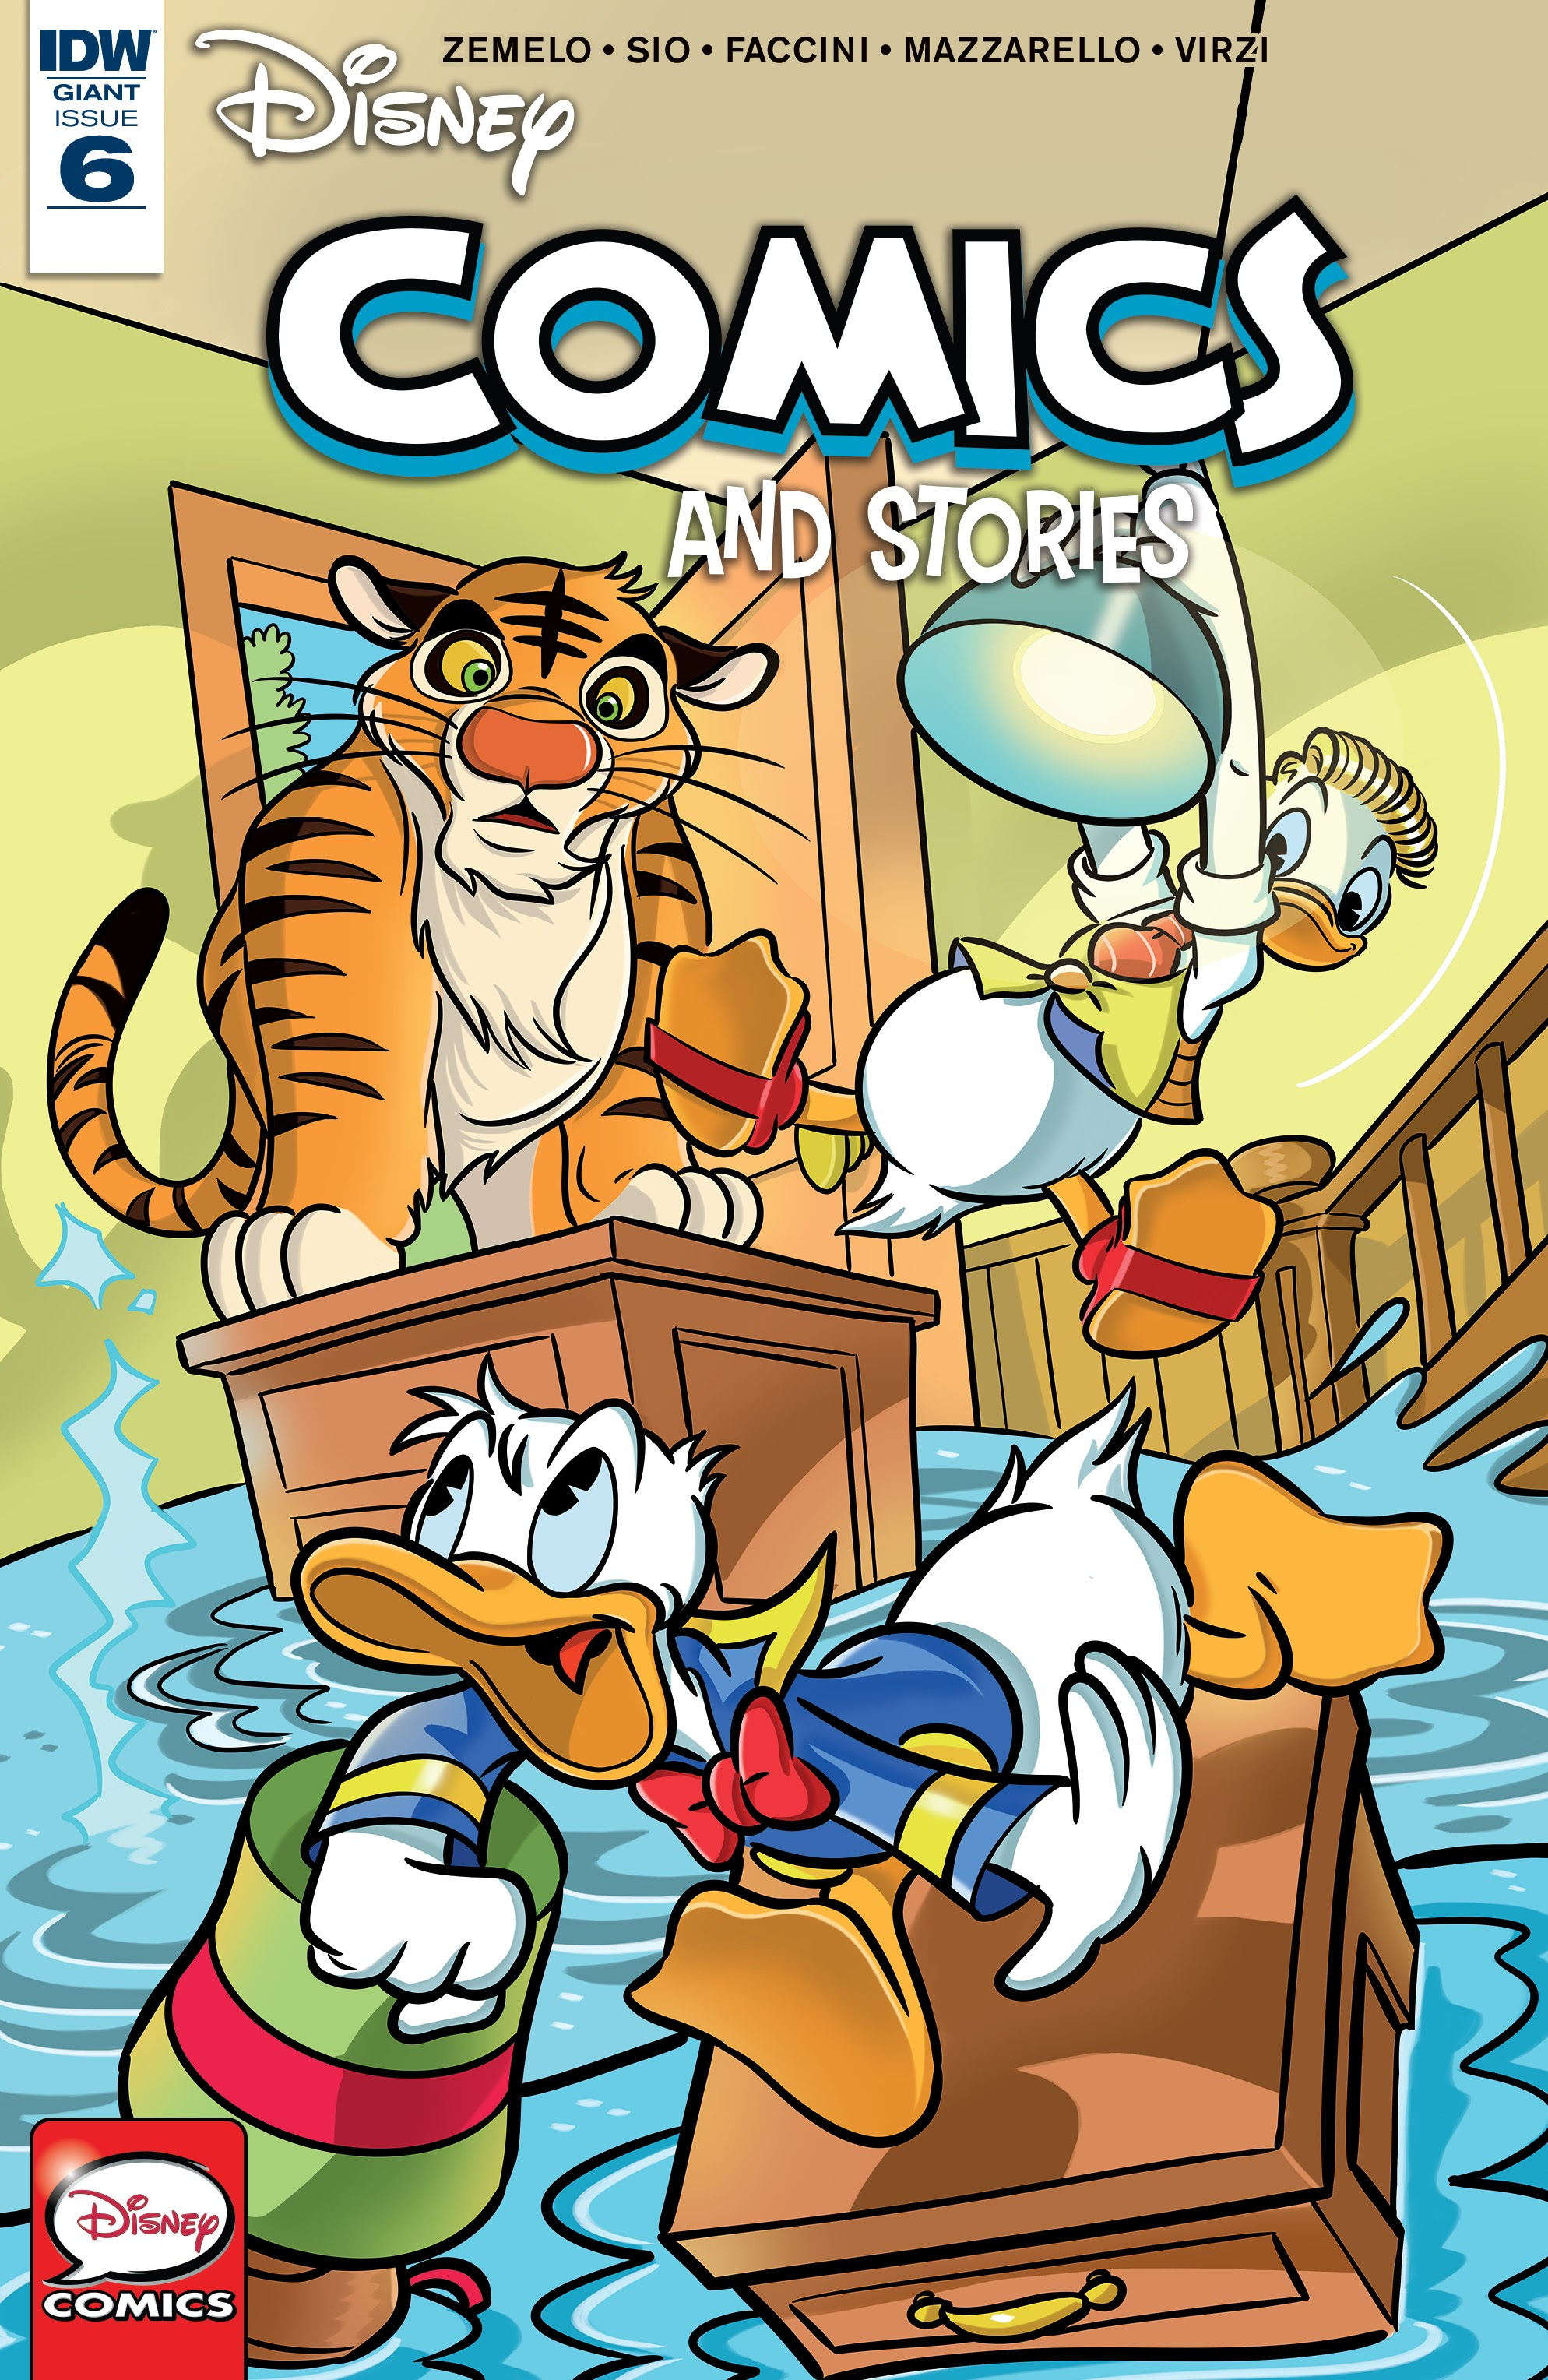 Disney Comics and Stories 6 Page 1